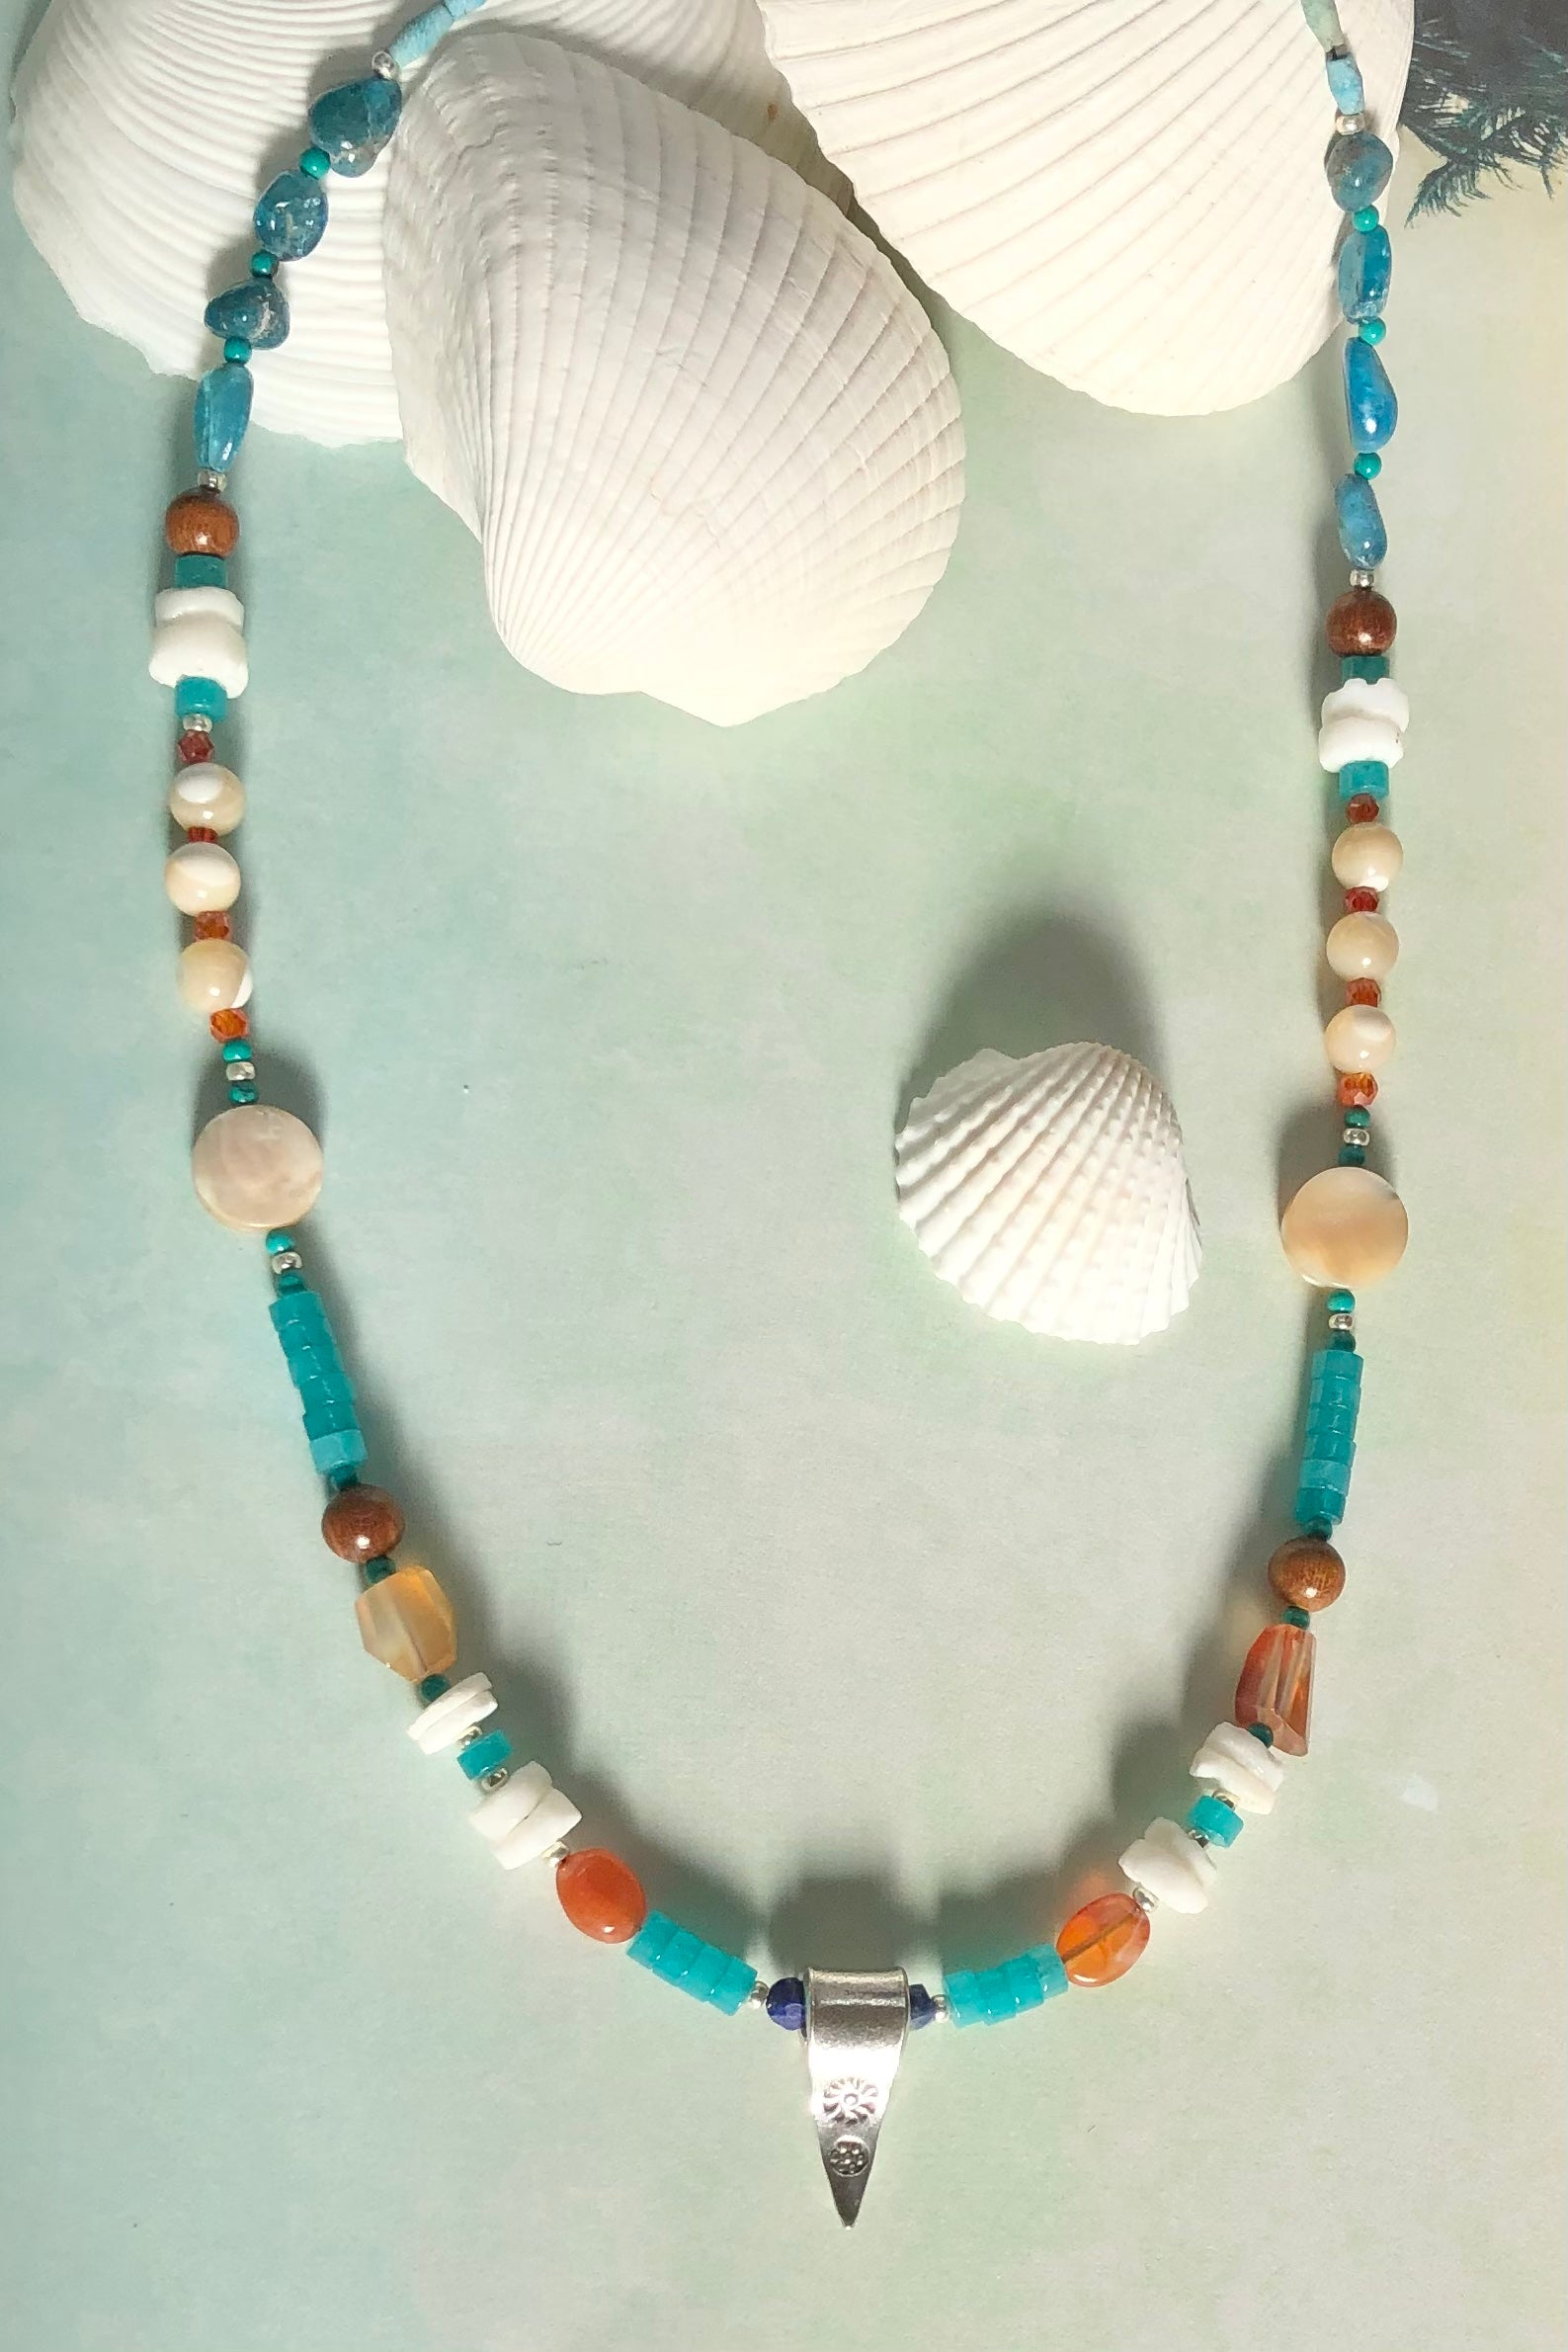 The beads in this range are all natural materials, gemstones, shell and wood.